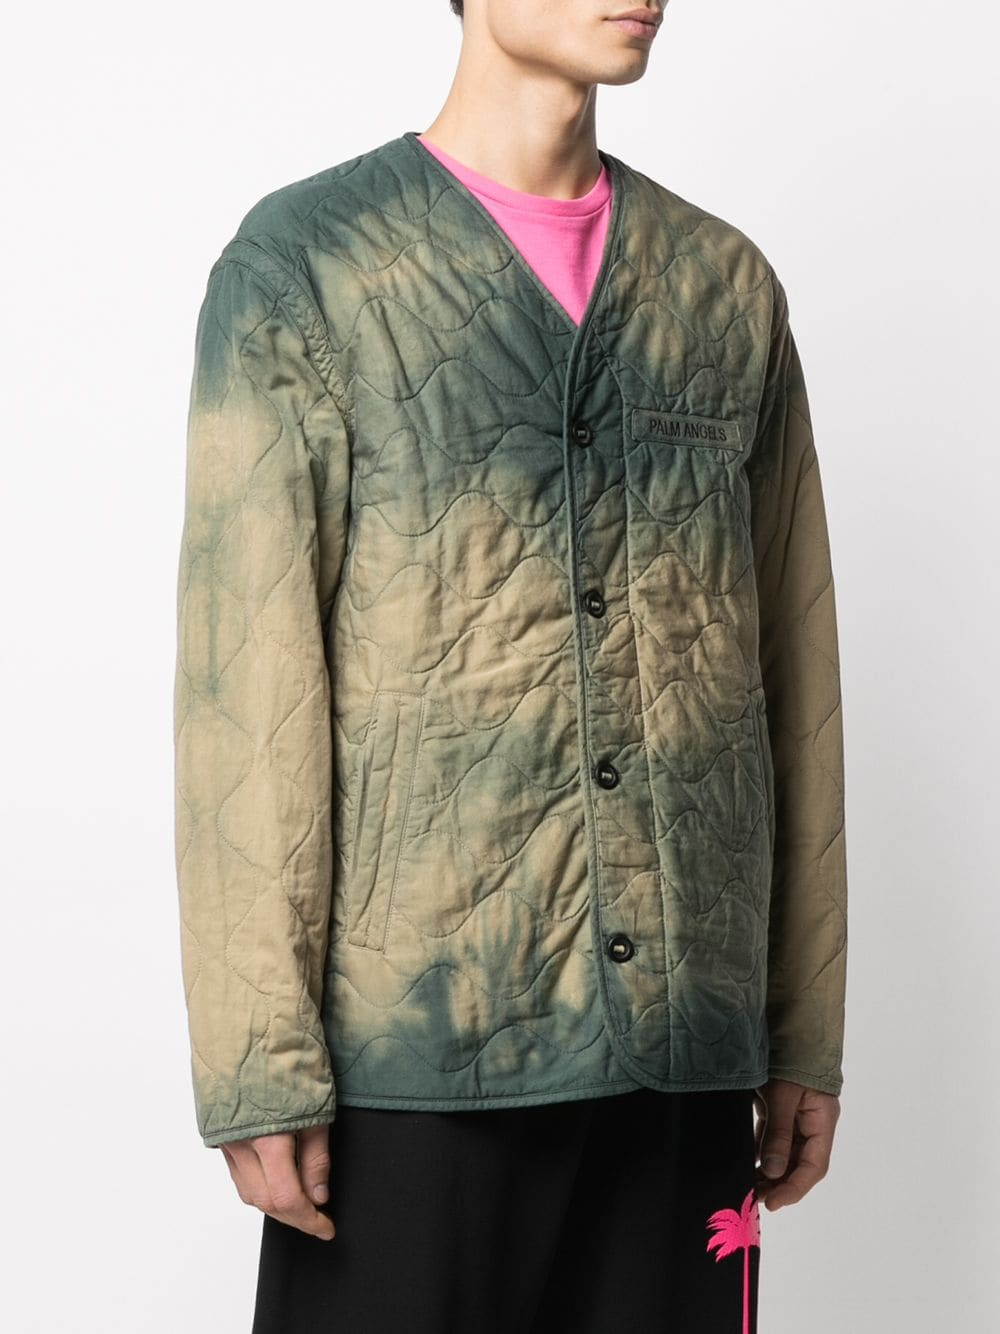 PALM ANGELS MEN MILITARY WINGS TIE DYE JACKET